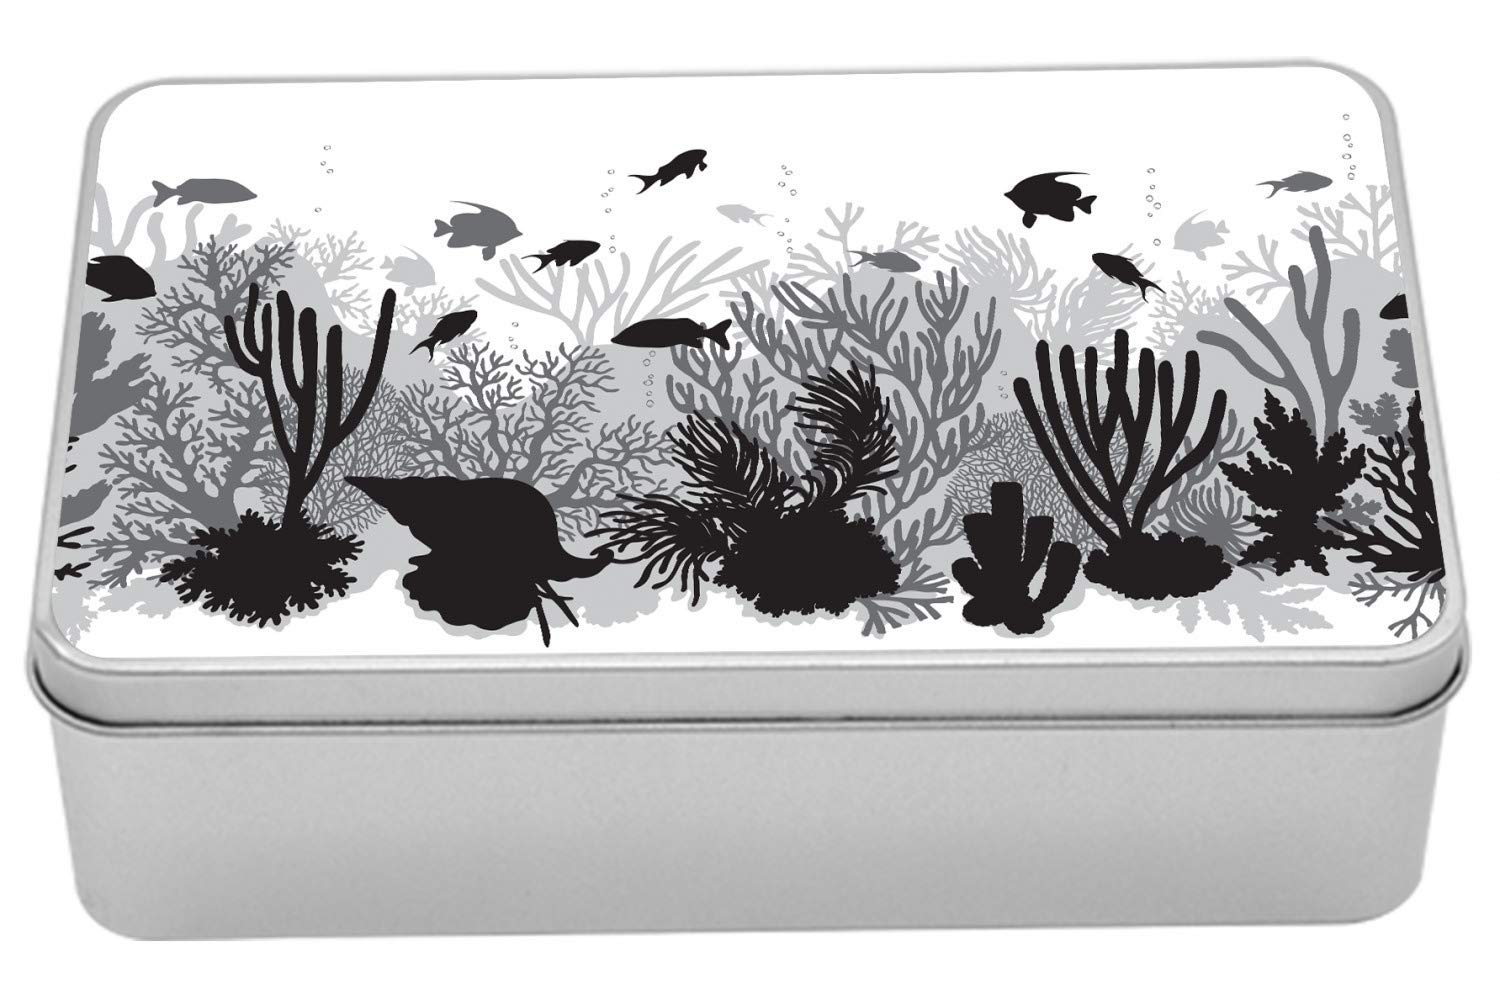 Lunarable Aquatic Metal Box, Silhouette Style Underwater Life Greyscale Aquarium Reef Fishes, Multi-Purpose Rectangular Tin Box Container with Lid, 7.2'' X 4.7'' X 2.2'', Charcoal Grey Pale Grey White